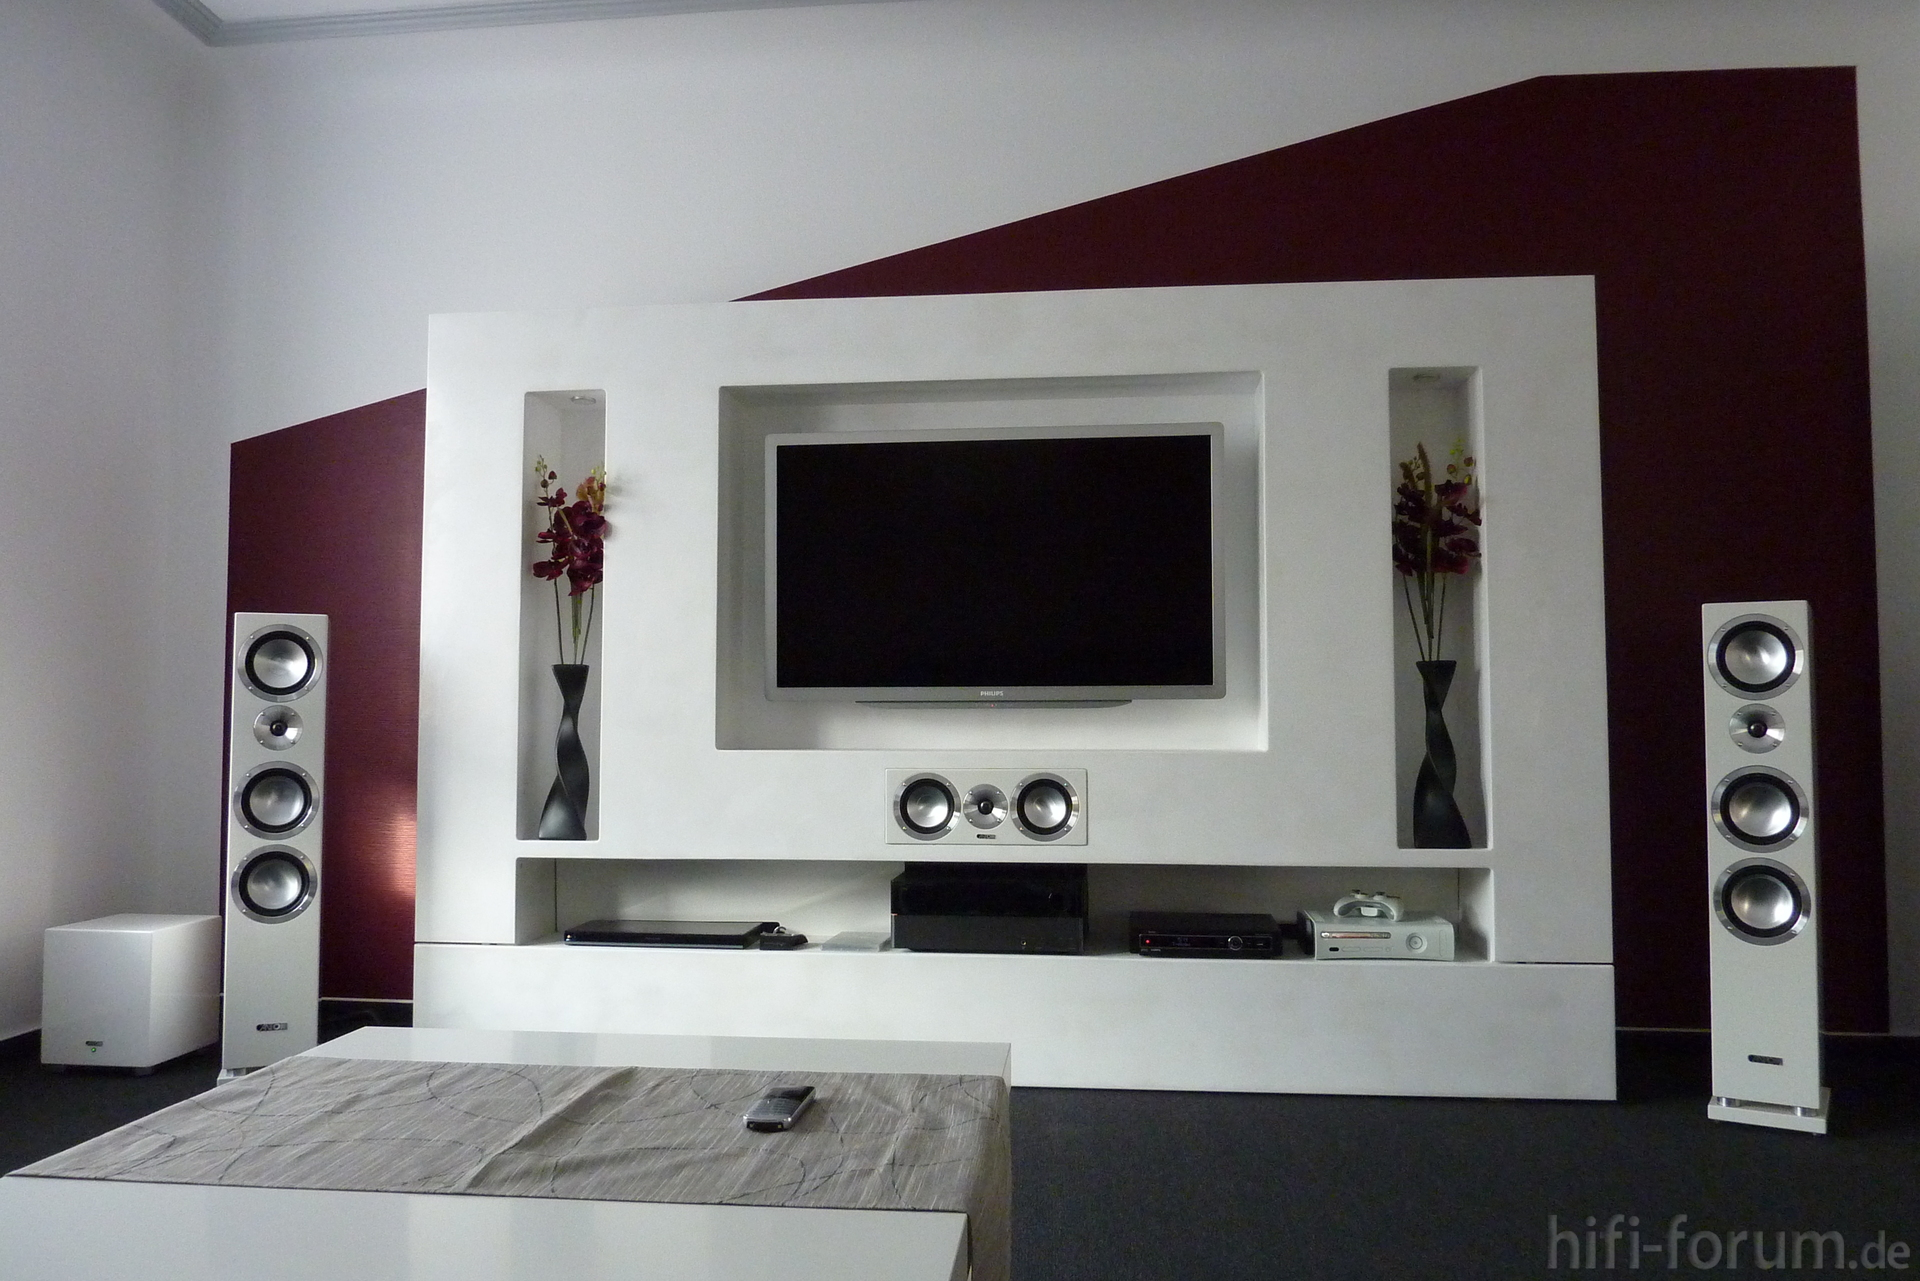 wohnzimmer medienwand bdt310 heimkino medienwand. Black Bedroom Furniture Sets. Home Design Ideas